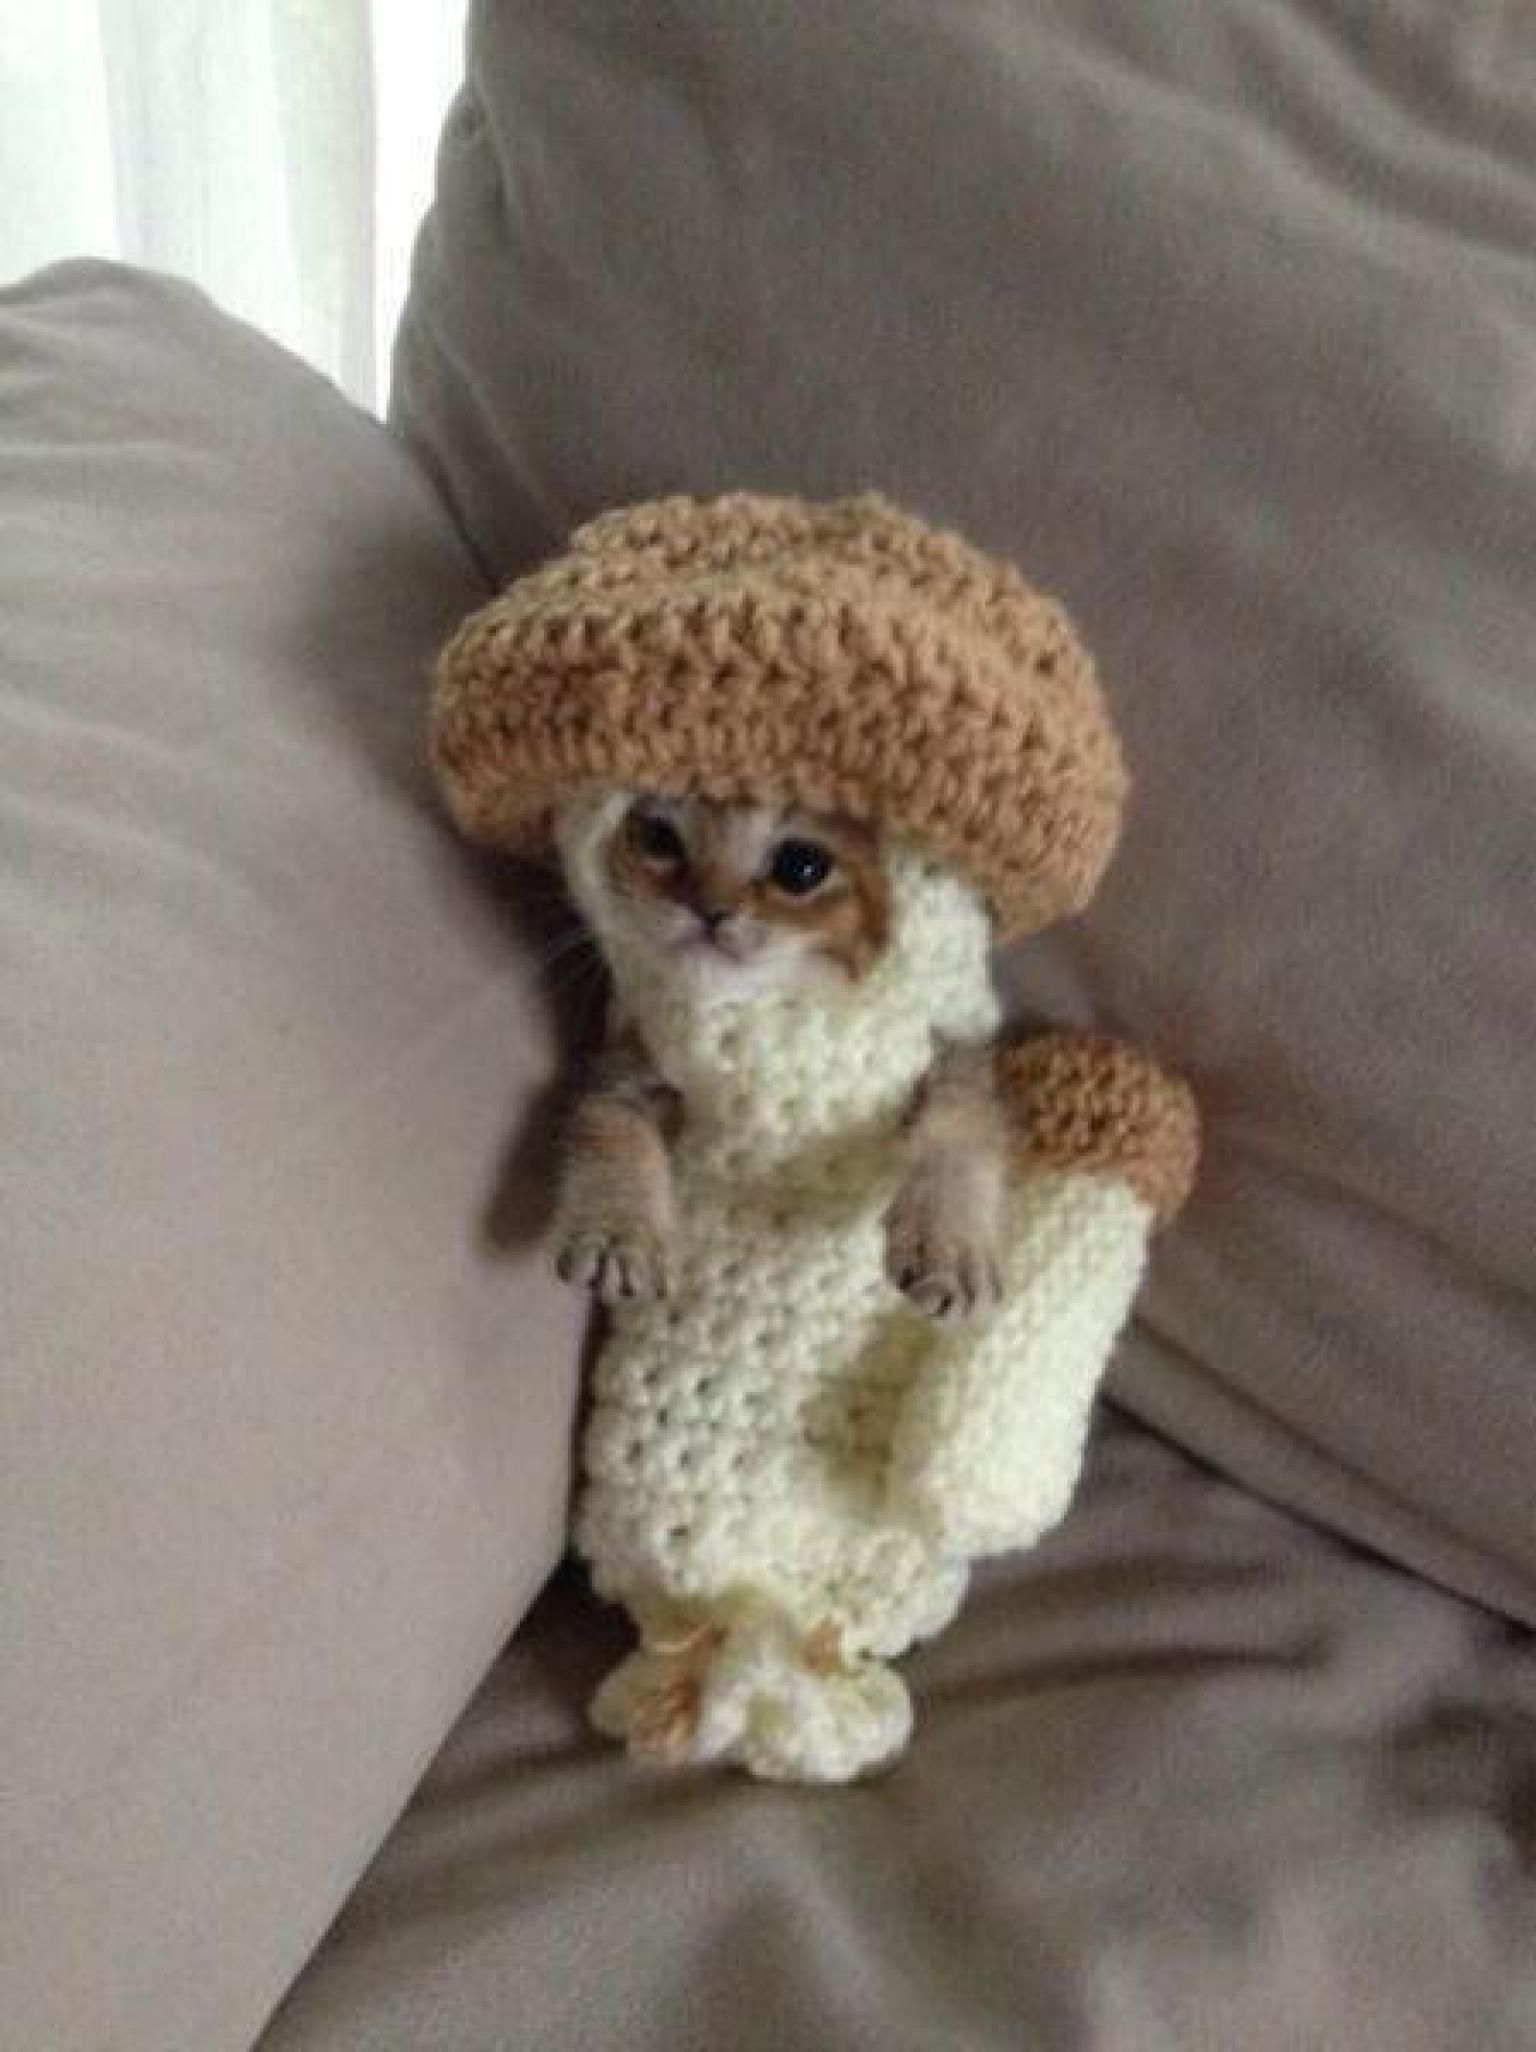 According to Redditor histak, Wasabi-chan was rescued after being attacked and injured by a crow. Her rescuer was feeding her with a tube, which the kitten hated, so the mushroom suit was made to hold her down while feeding.